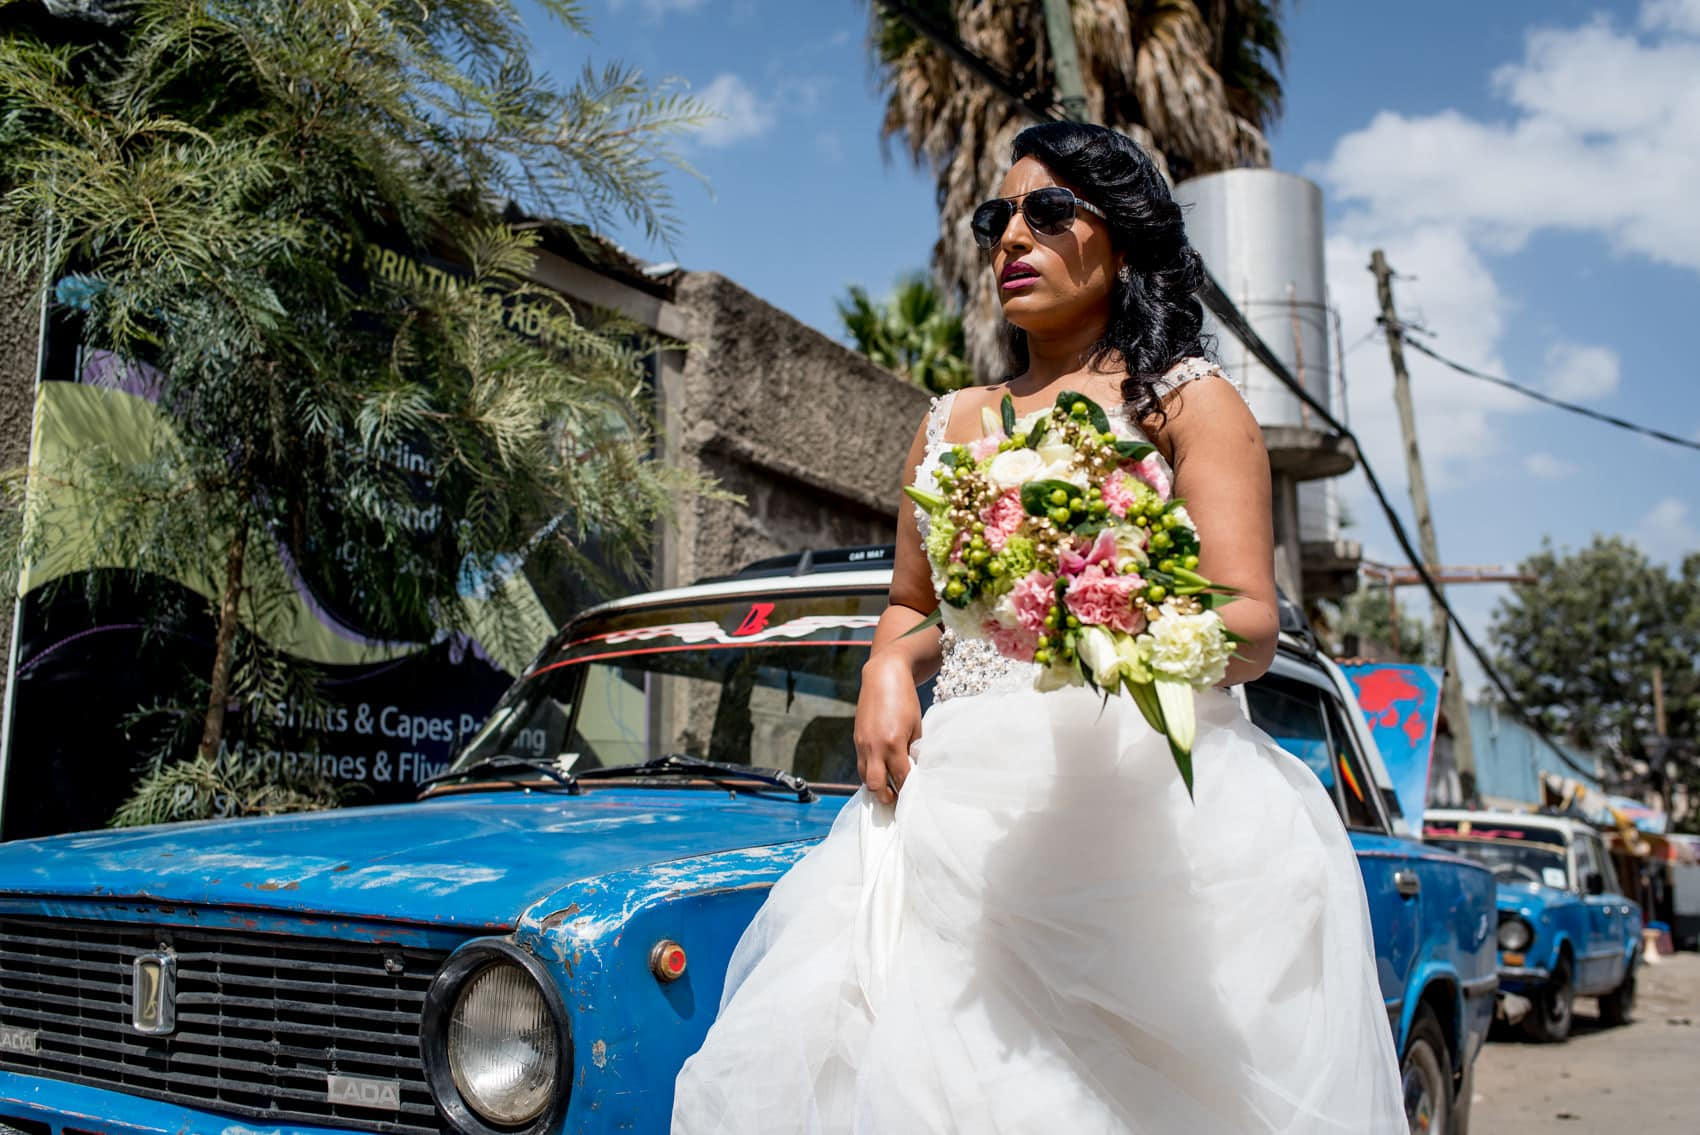 Wedding bride in Addis Ababa in front of a blue Landa taxi